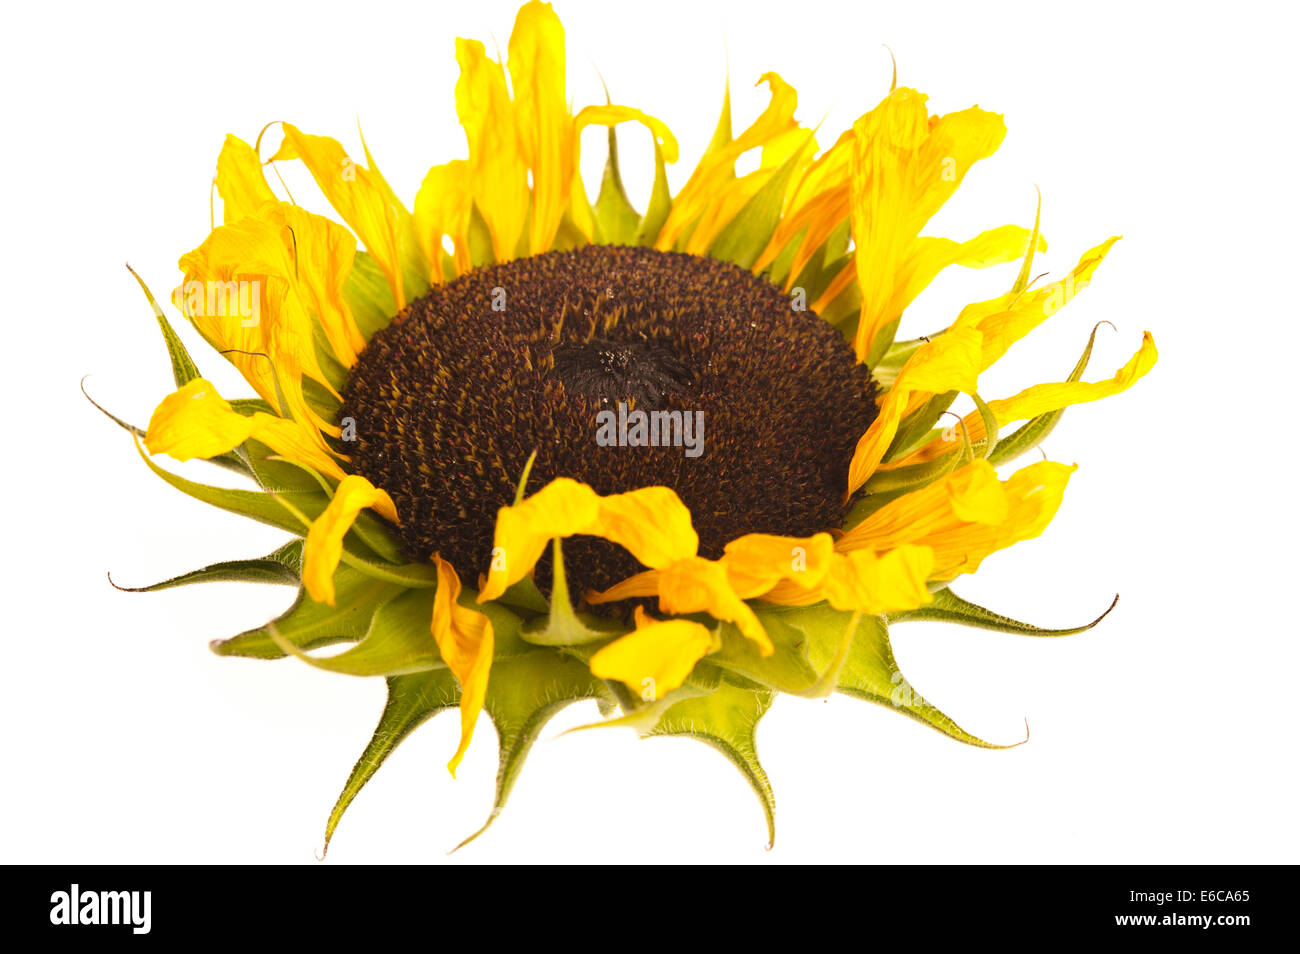 dying sunflower - Stock Image